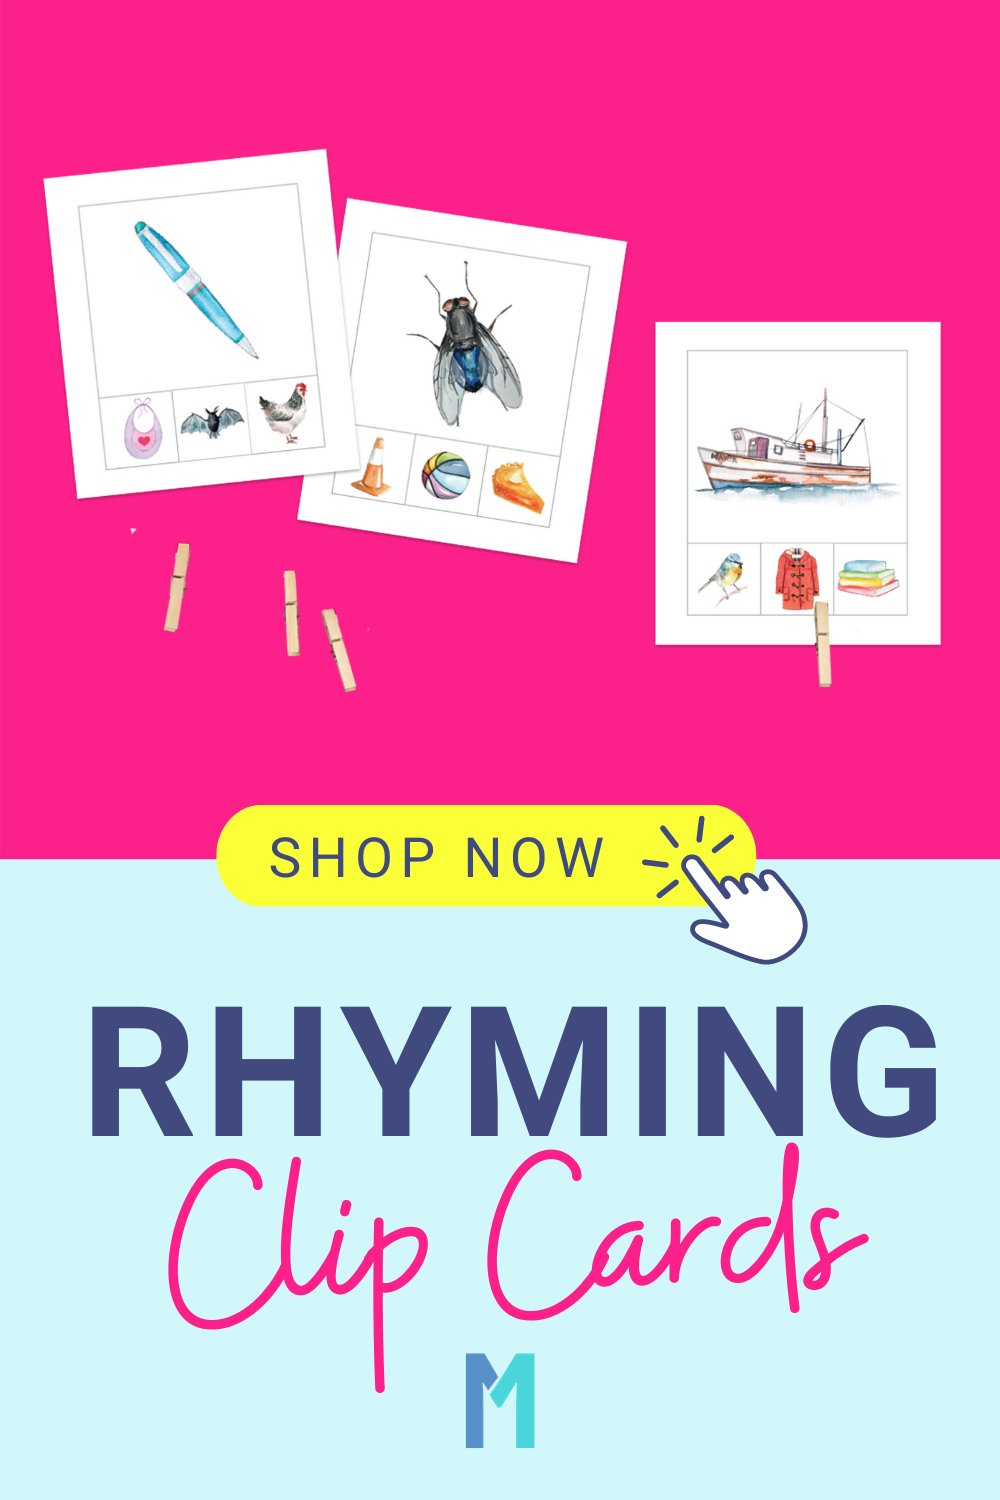 Rhyming Words Clip Cards Printable Activities